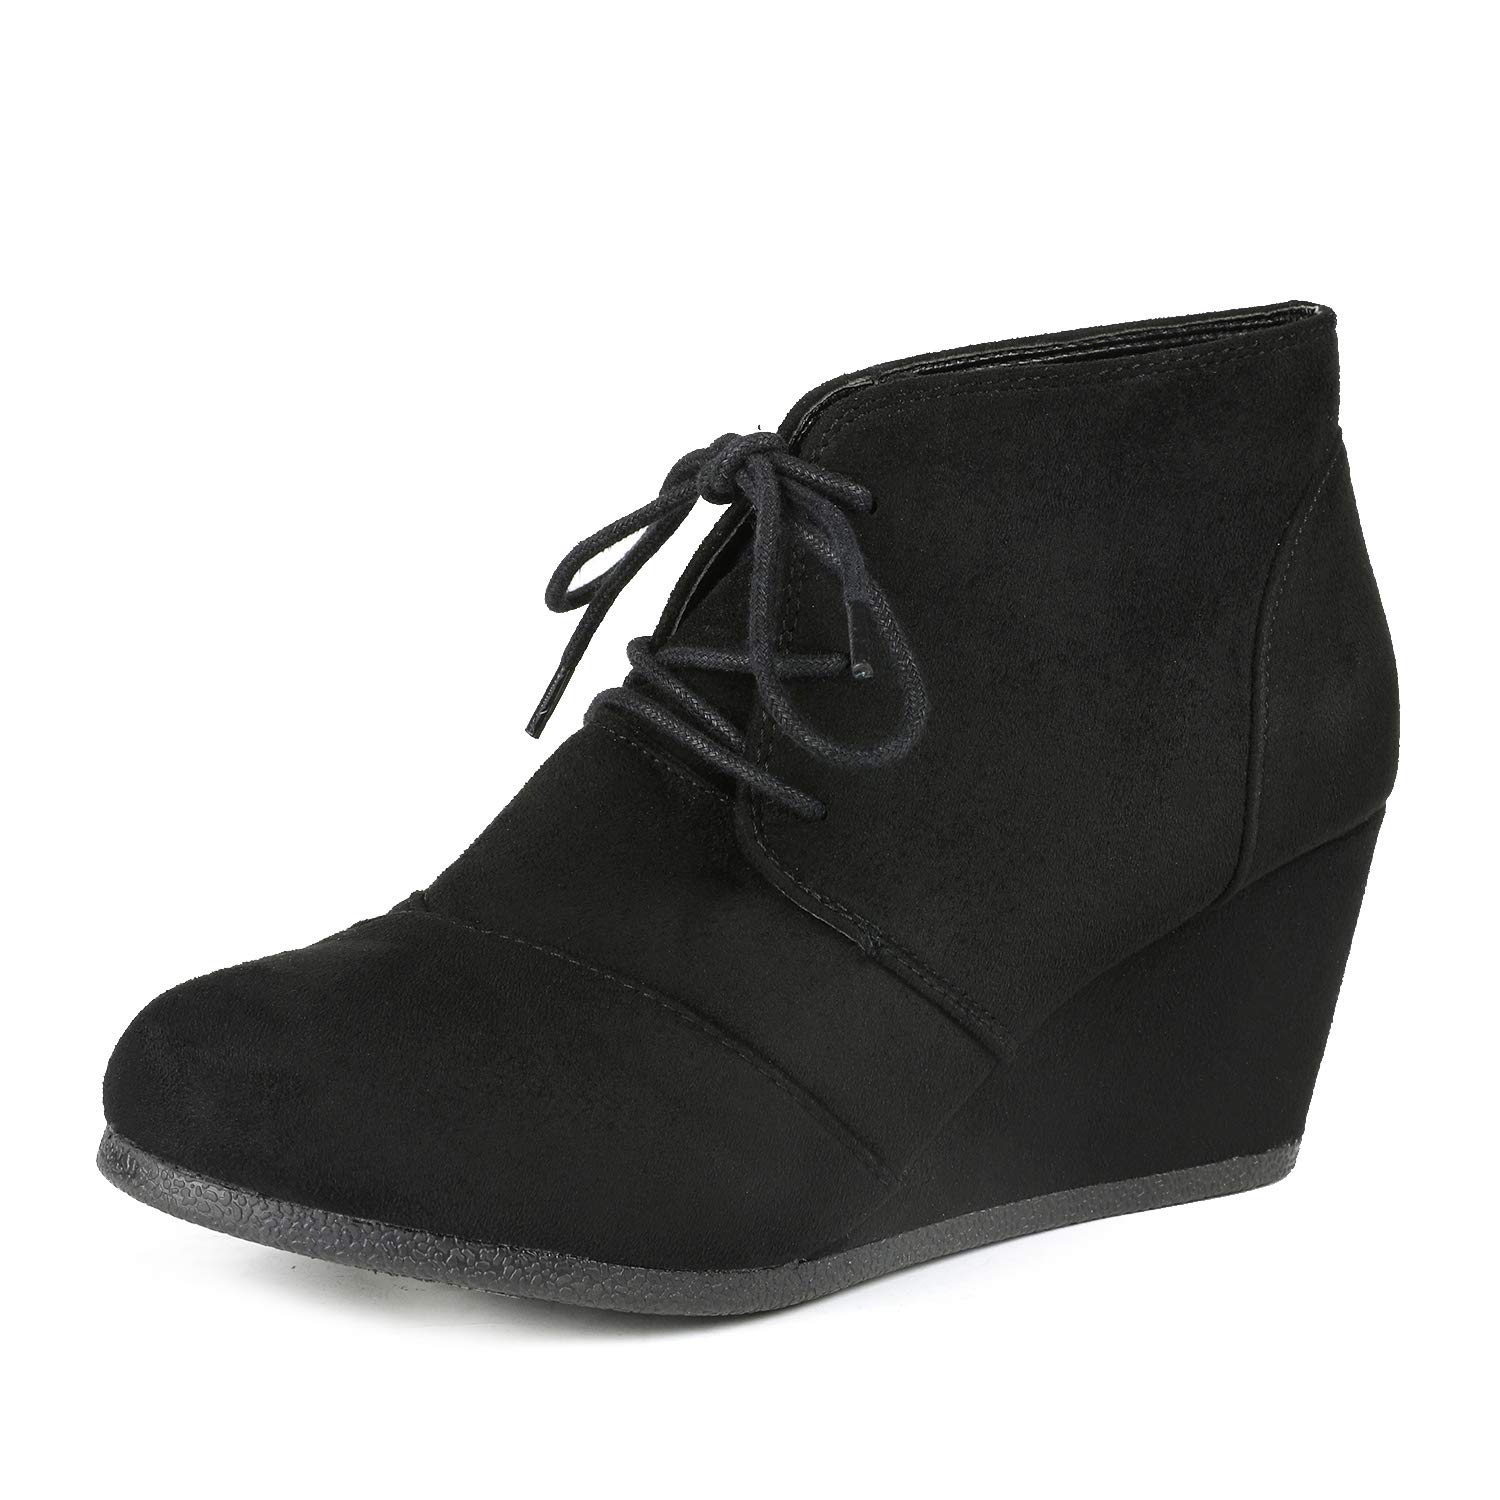 DREAM PAIRS Fashion Outdoor Booties